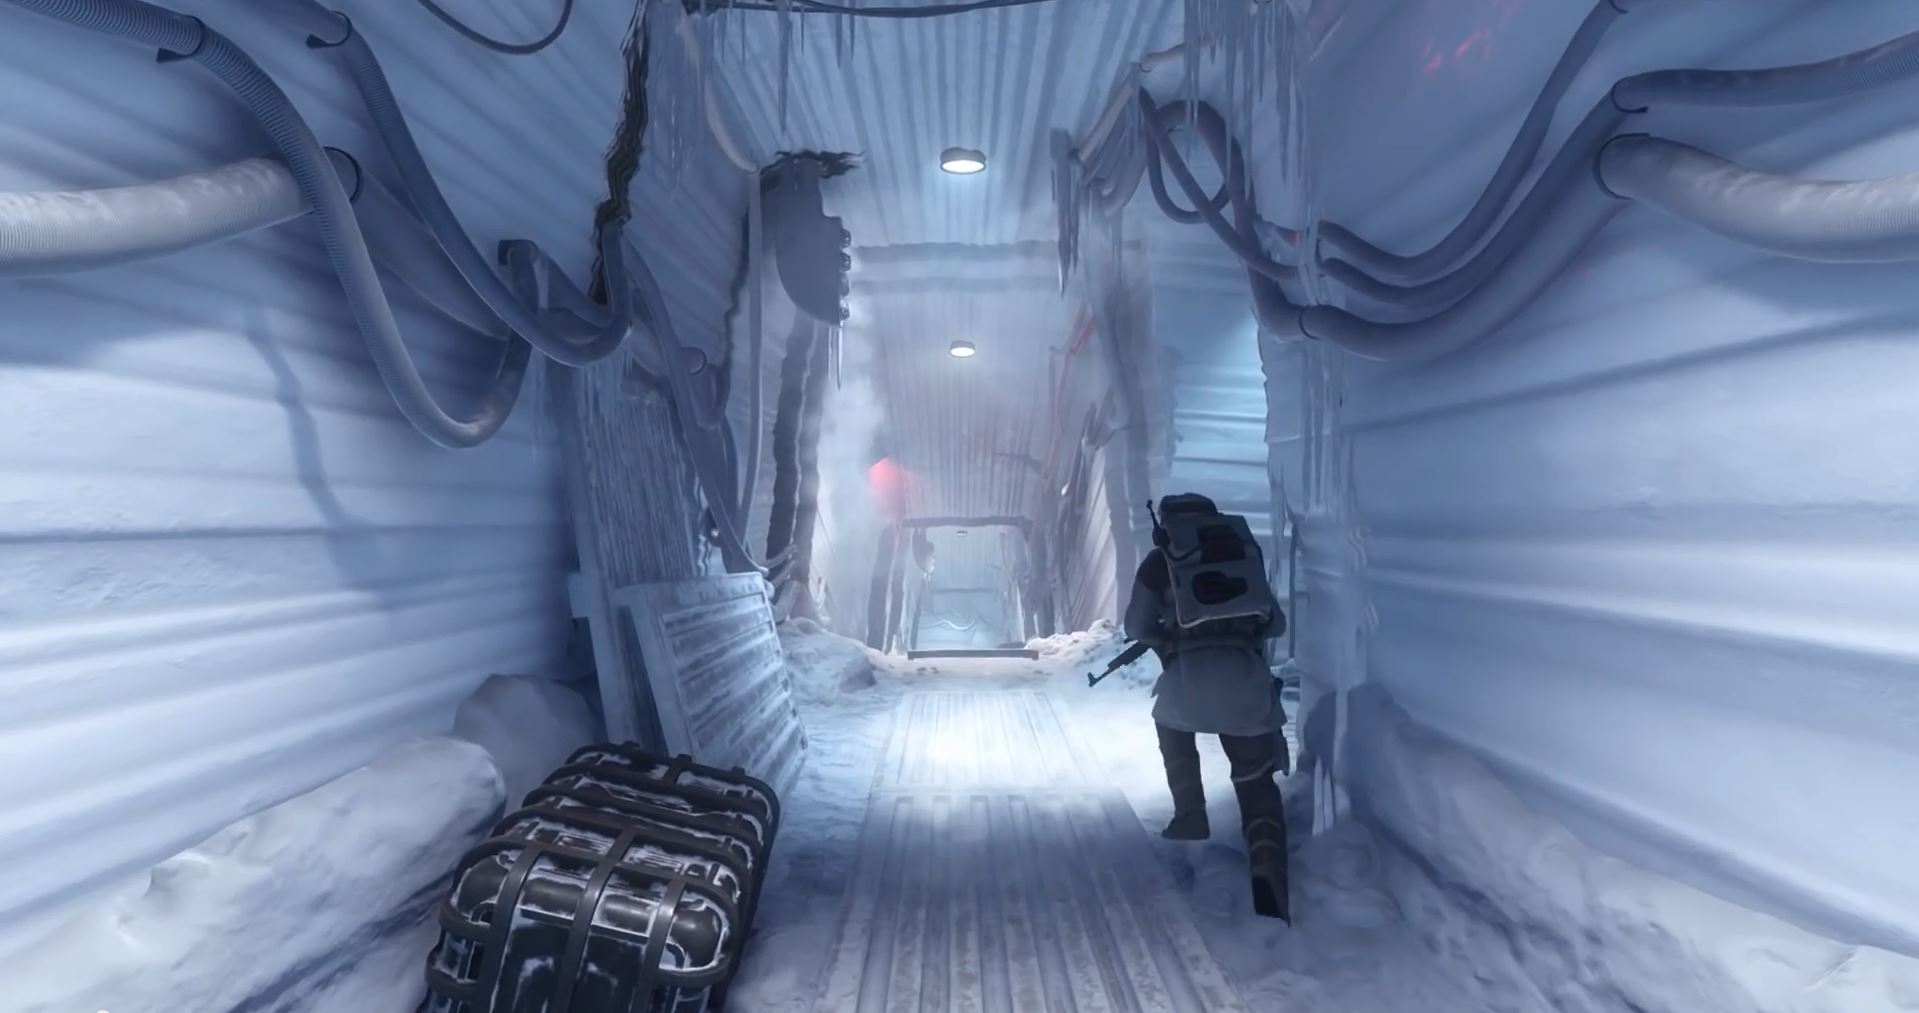 Inside Echo Base on Hoth - Star Wars Battlefront Preview